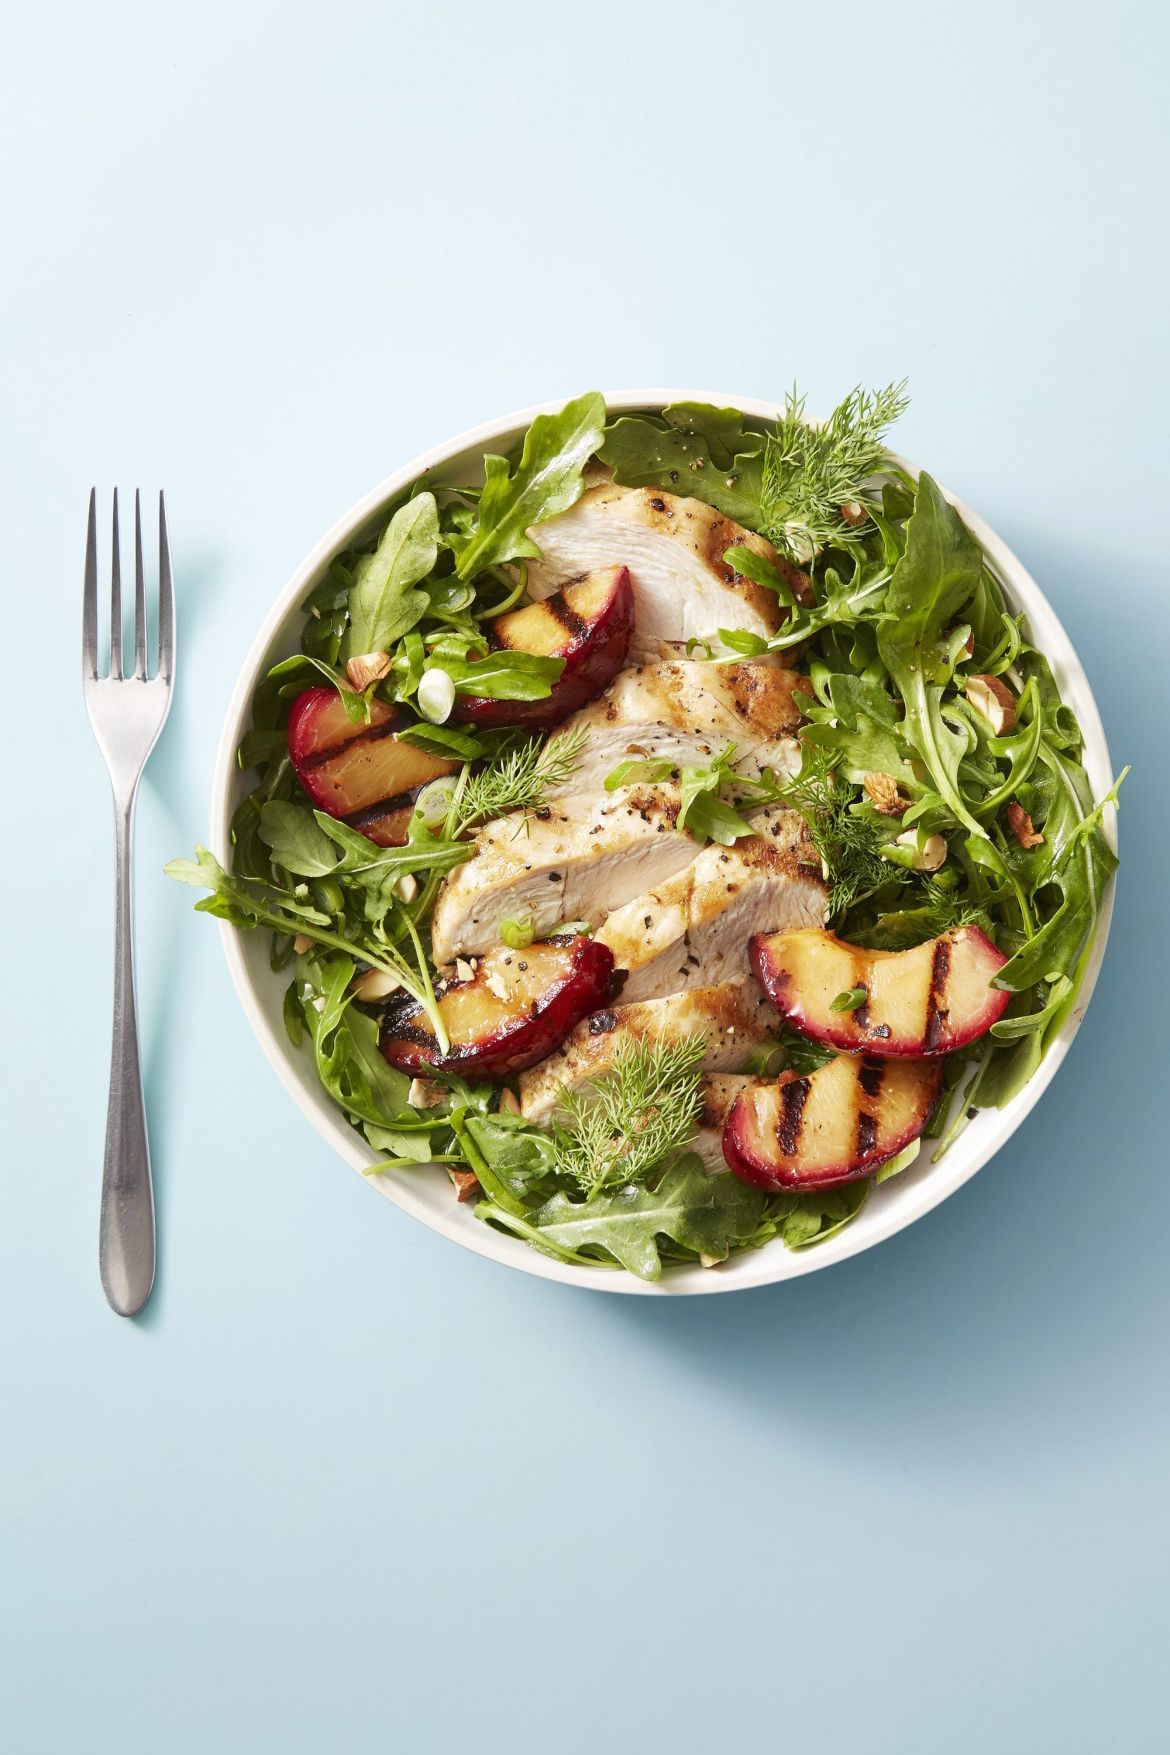 chicken and red plum salad healthy lunch ideas 1555338056 - Healthy Things to Eat for Lunch -19 Healthy Lunch Ideas for You